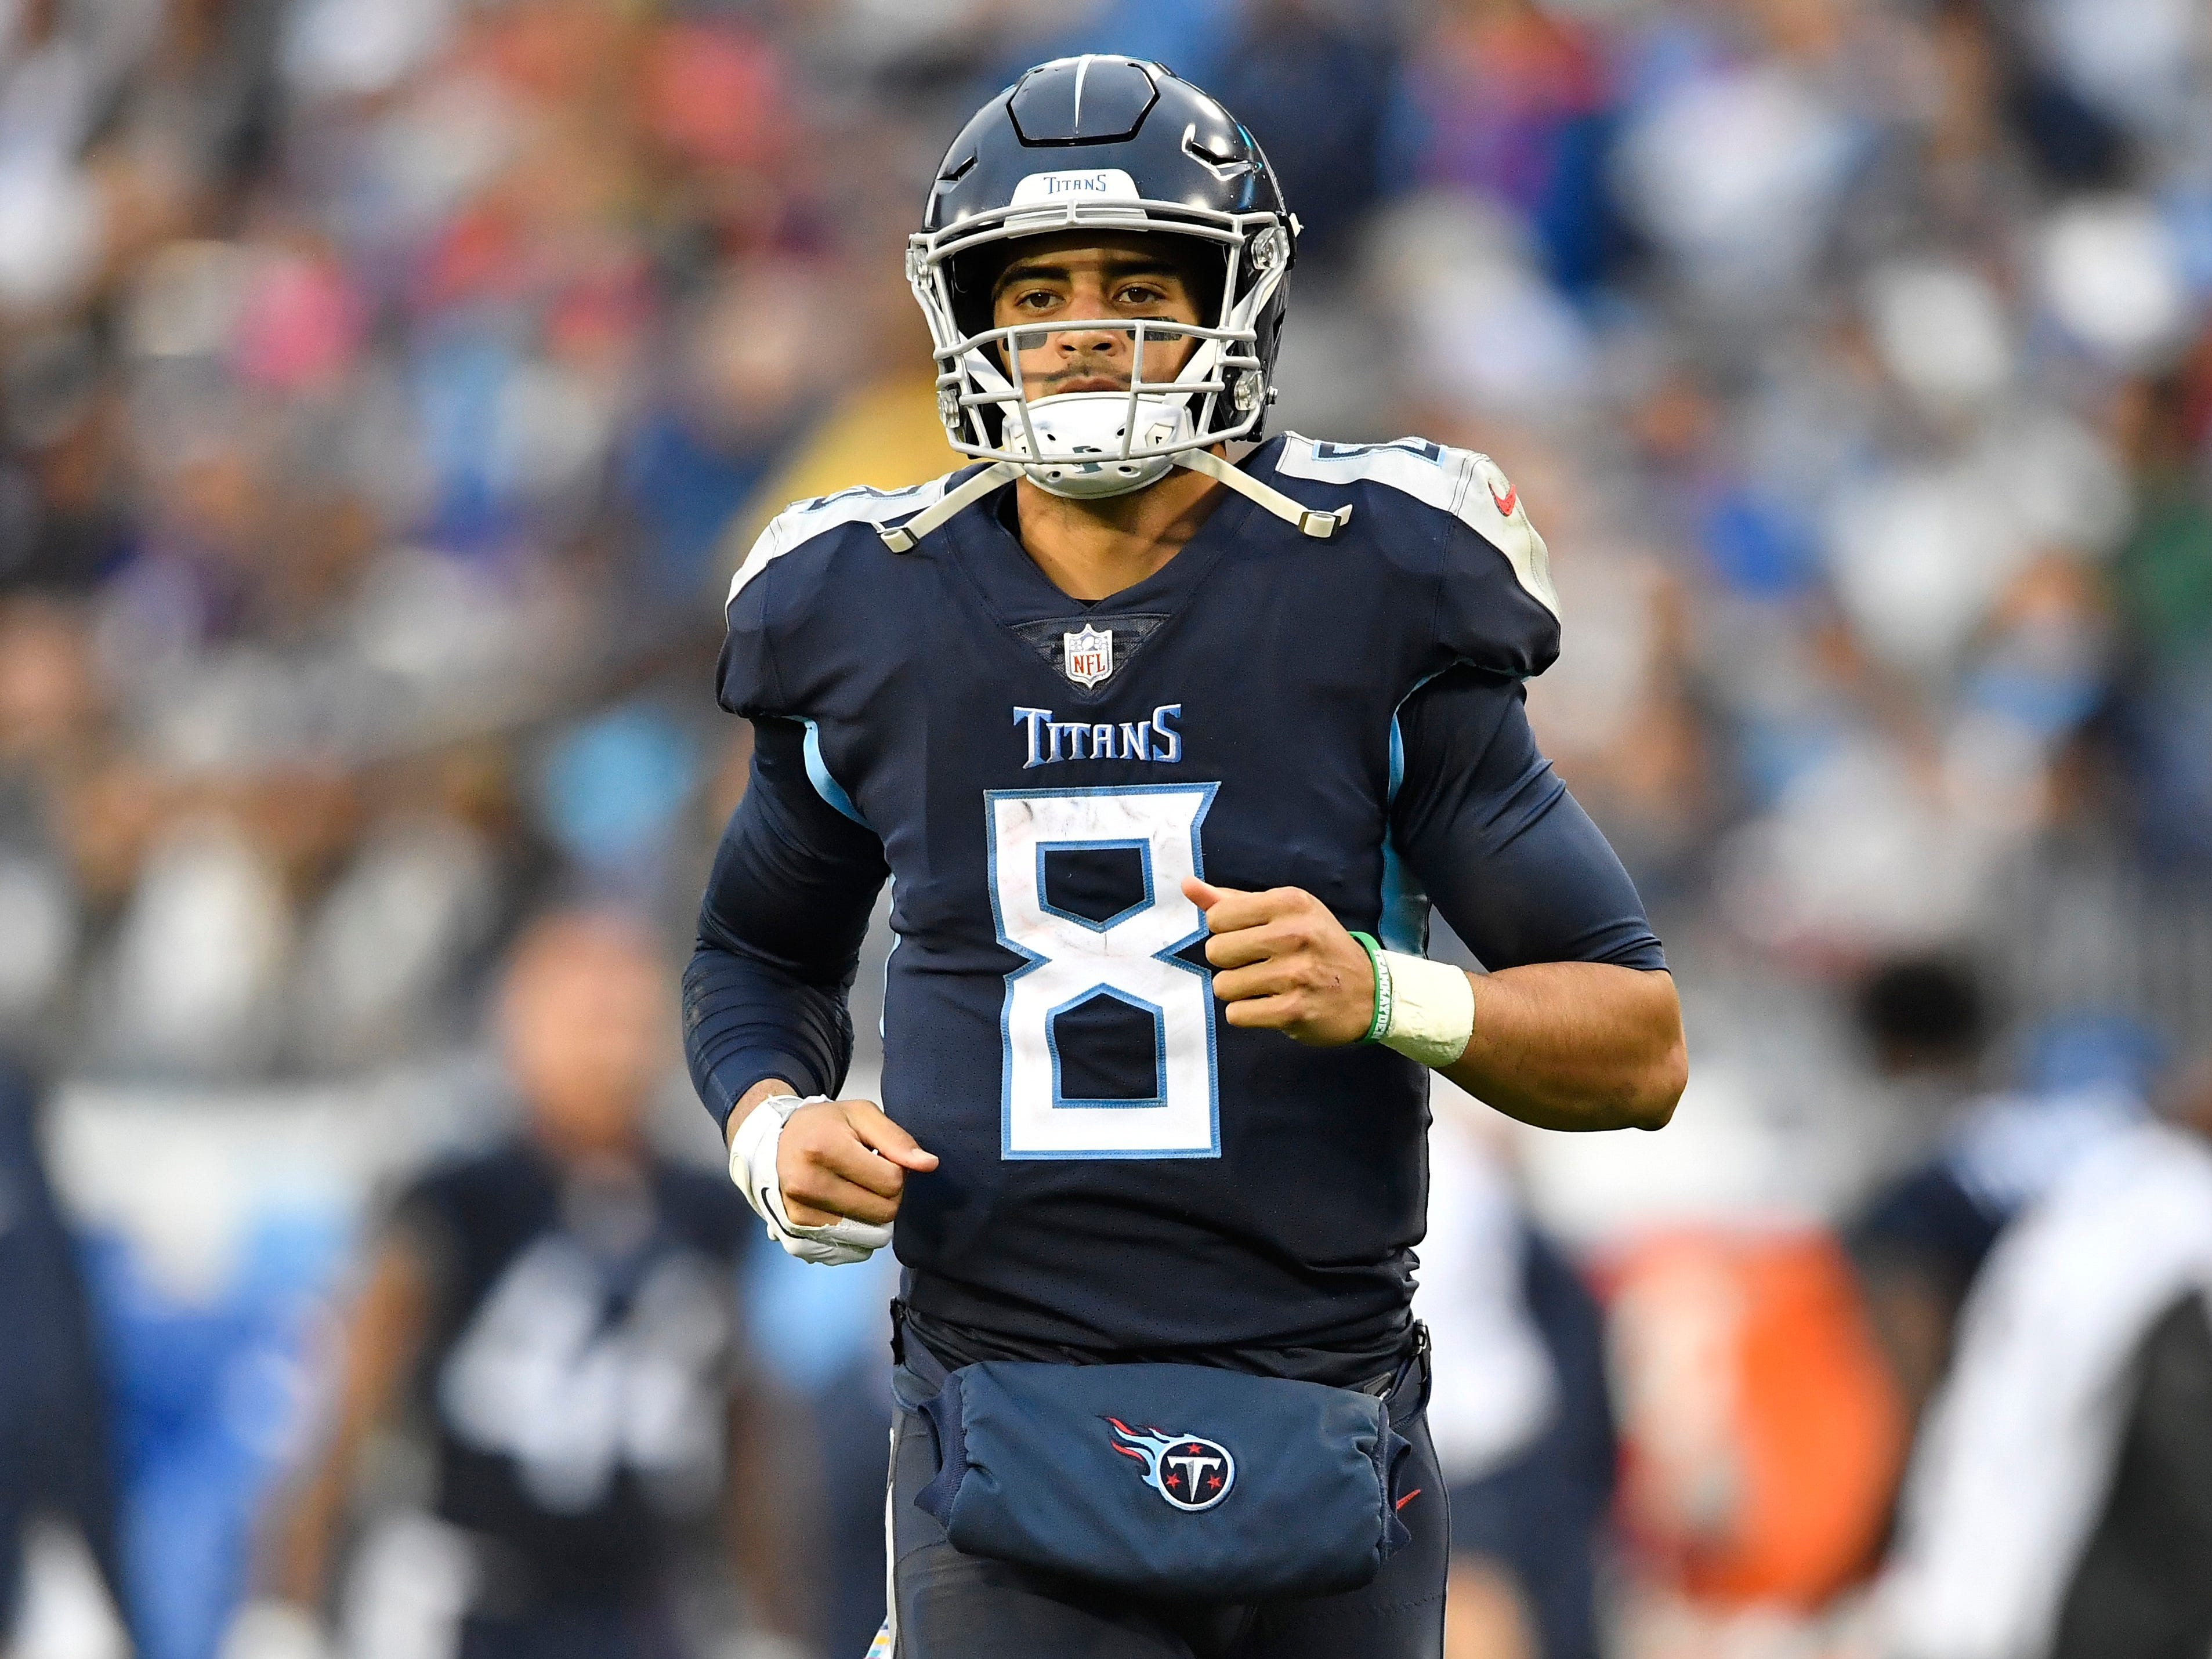 Titans quarterback Marcus Mariota (8) jogs onto the field for a set of downs in the third quarter at Nissan Stadium Sunday, Oct. 14, 2018, in Nashville, Tenn.